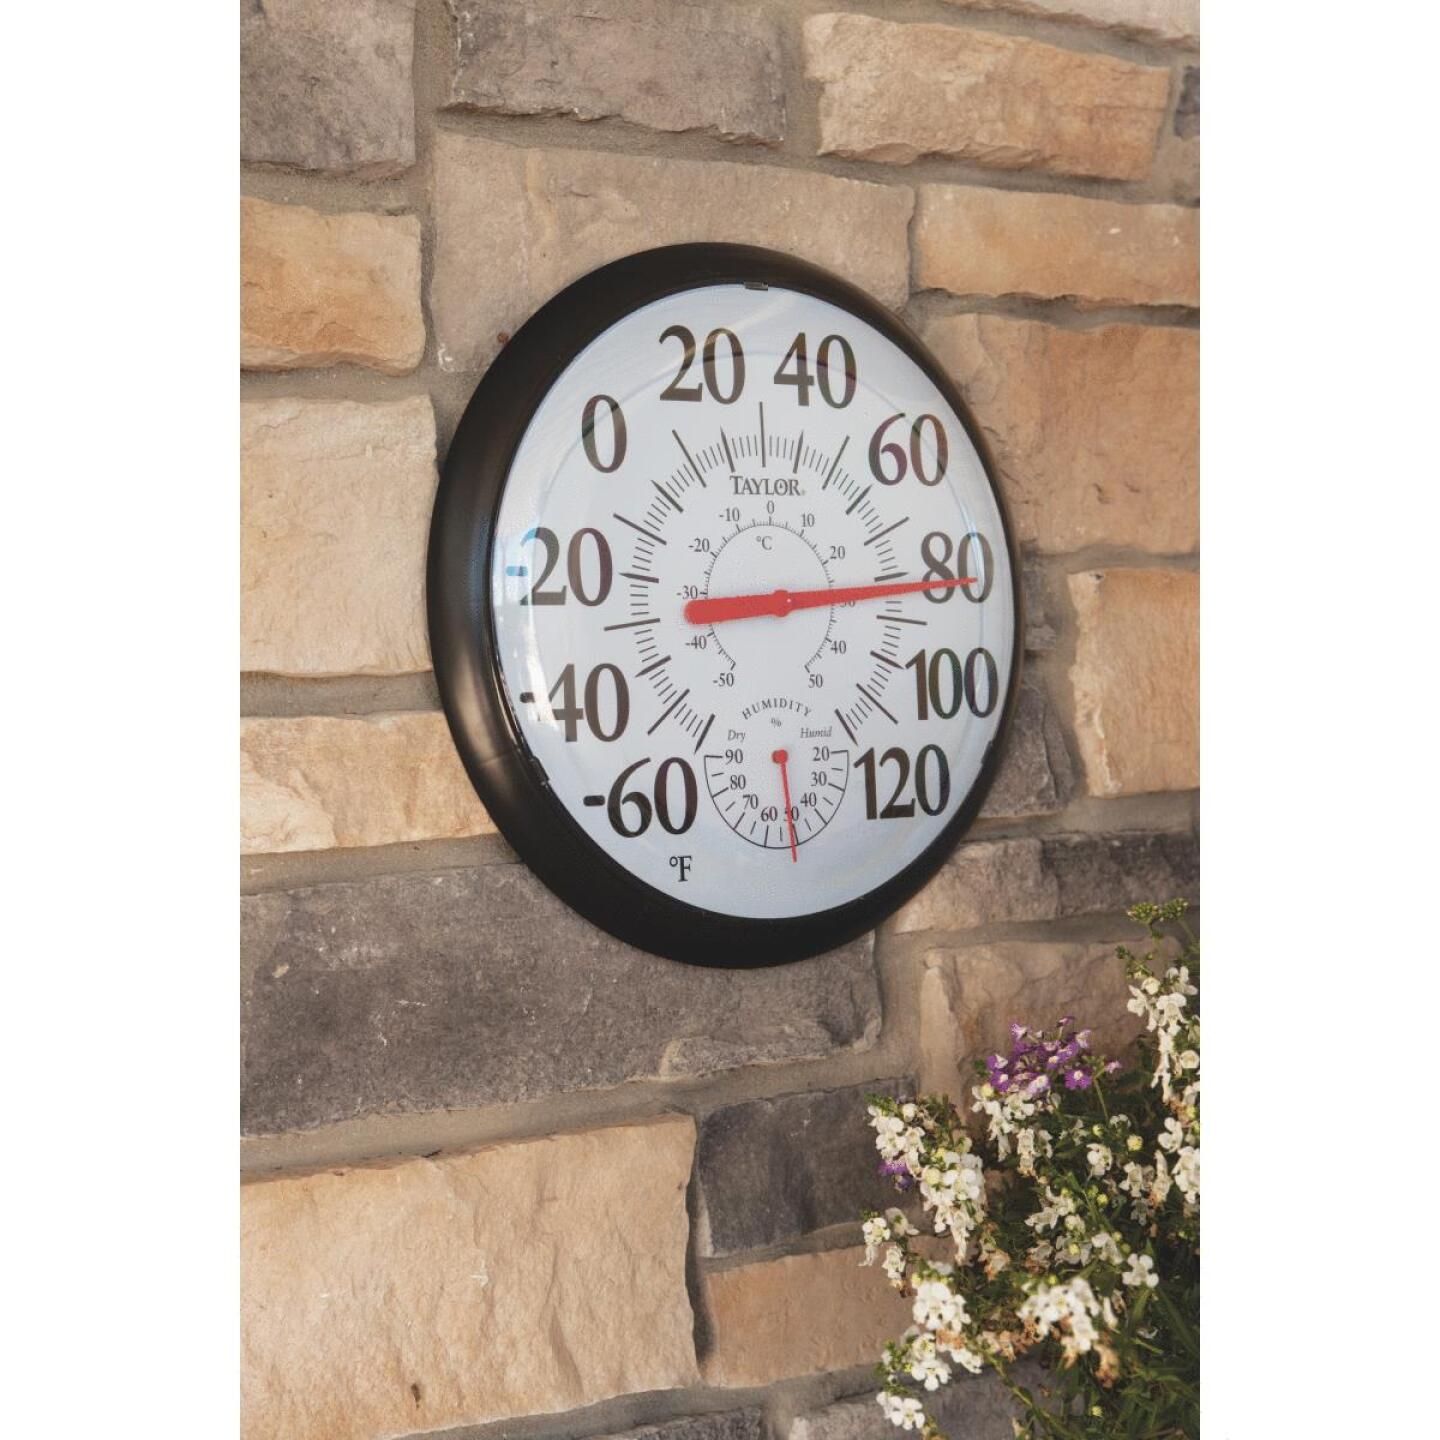 Taylor Fahrenheit & Celsius Analog -60 To 120 F, -50 to 50 C Hygrometer & Thermometer Image 3